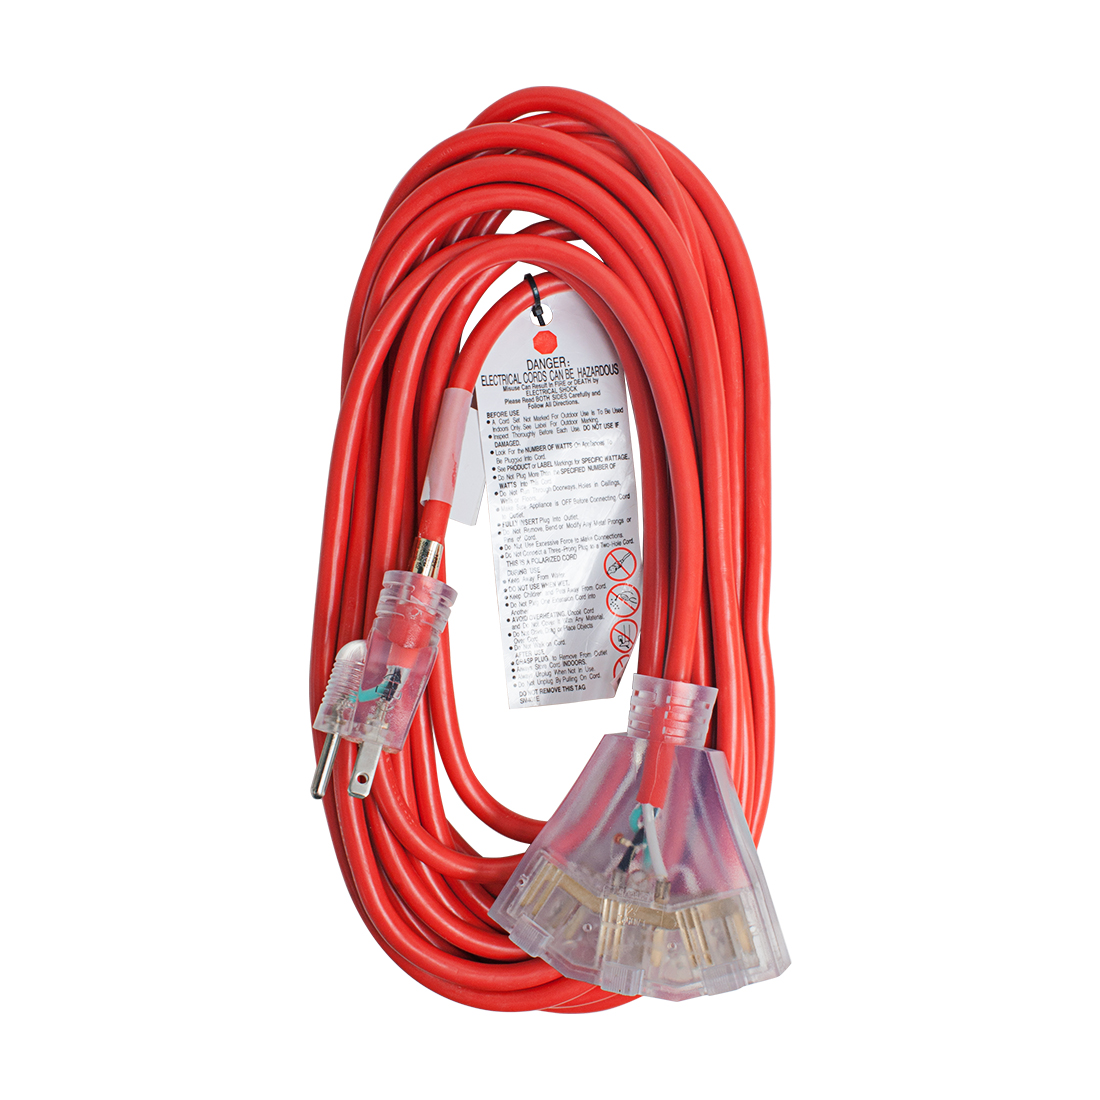 US Plug to 3 Outlets Lighted Power Extension Cord Cable 15A 14AWG SJTW 25Ft Red